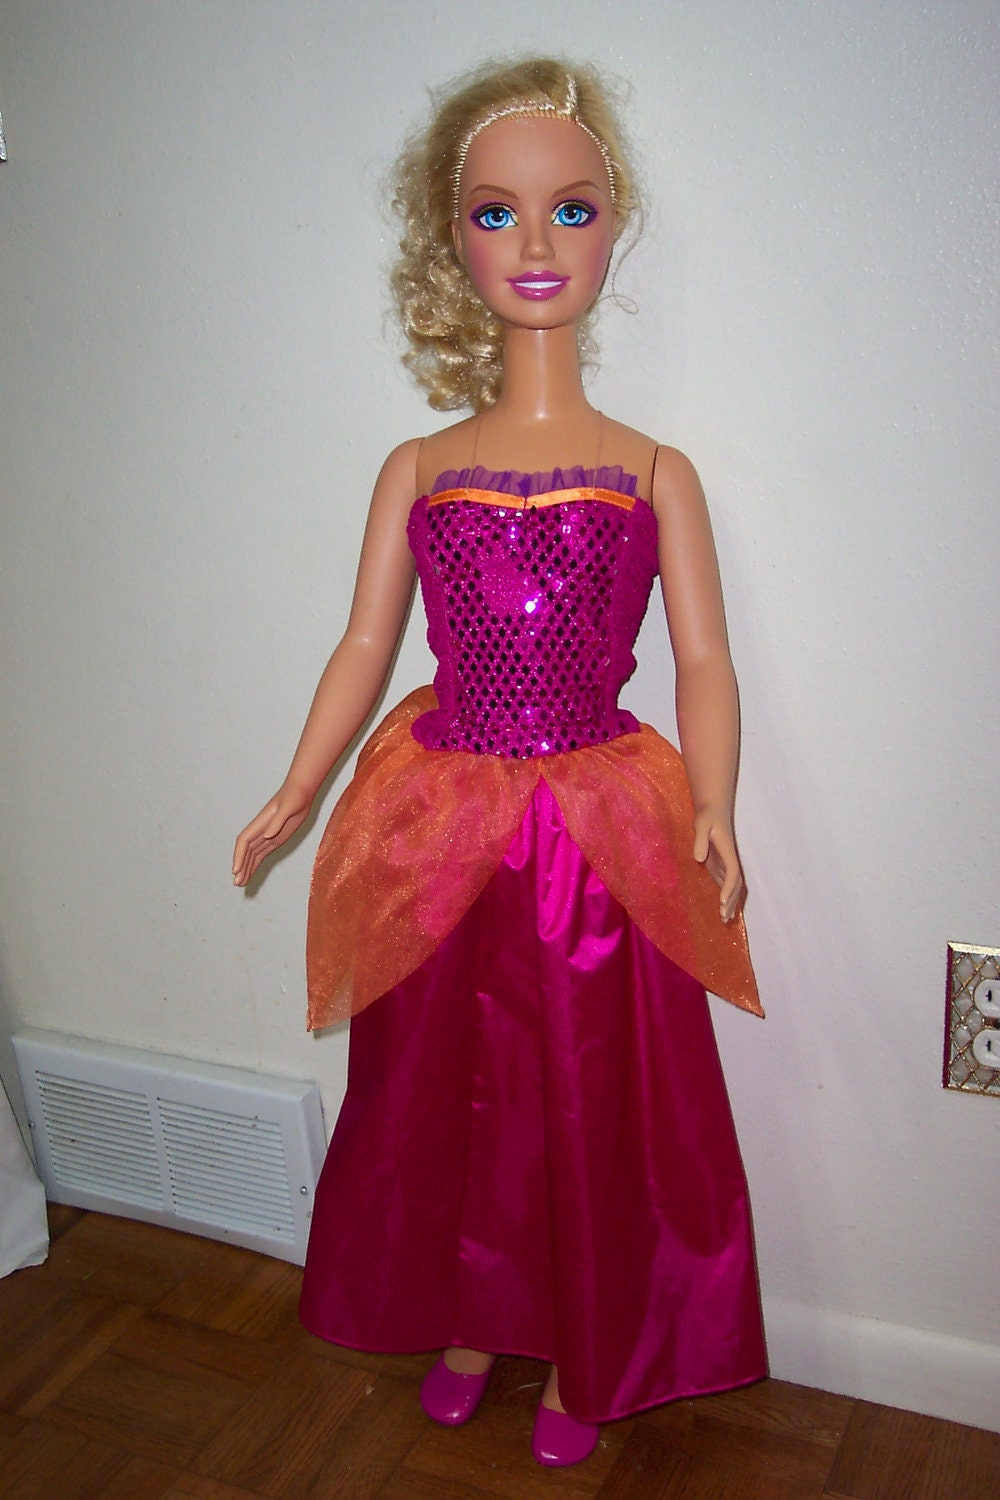 Doll Barbie Doll My Size Barbie Doll 3 Foot Tall By